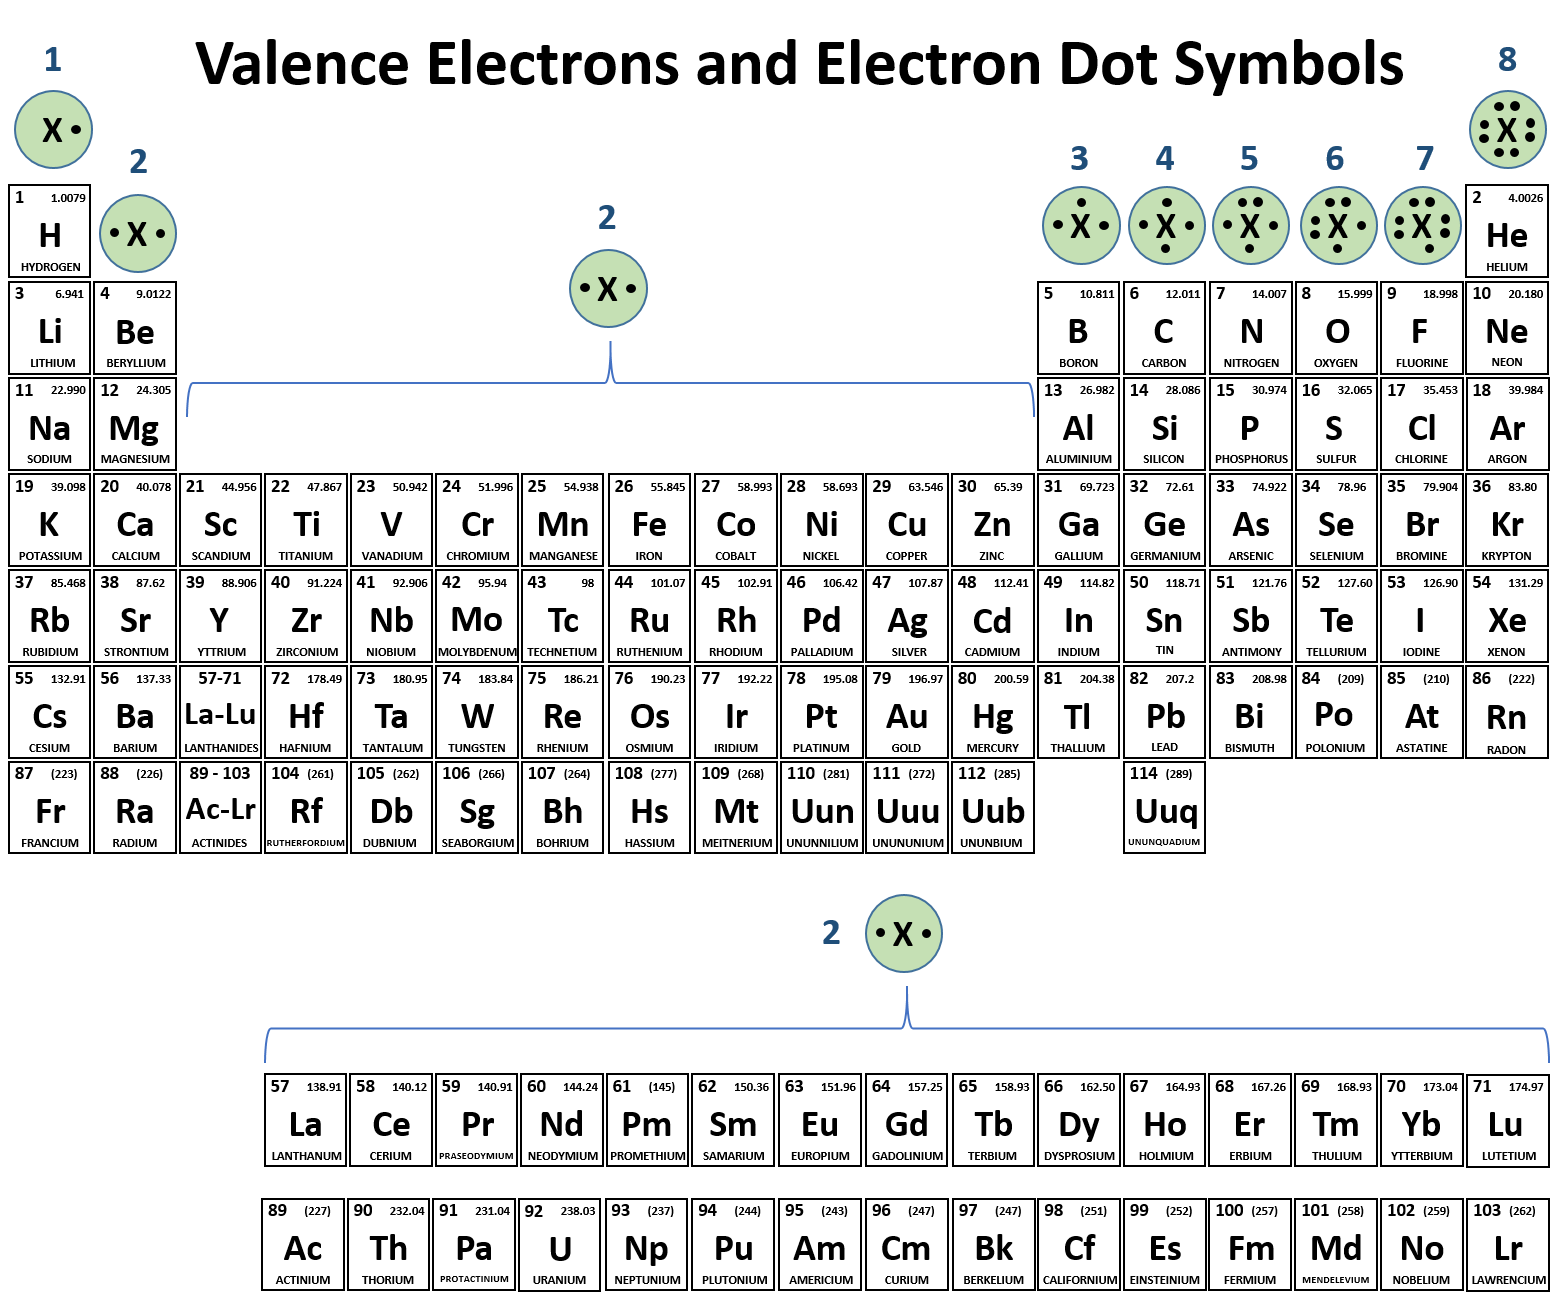 Ch104 Chapter 4 Covalent Bonds And Molecular Compounds Chemistry Electron Shell Diagram For Oxygen The Next Two Shells Can Hold 8 Each Family Shows A Representative Lewis Structure That Group Of Elements Nonmetals Families 4a 5a 6a 7a They Accept